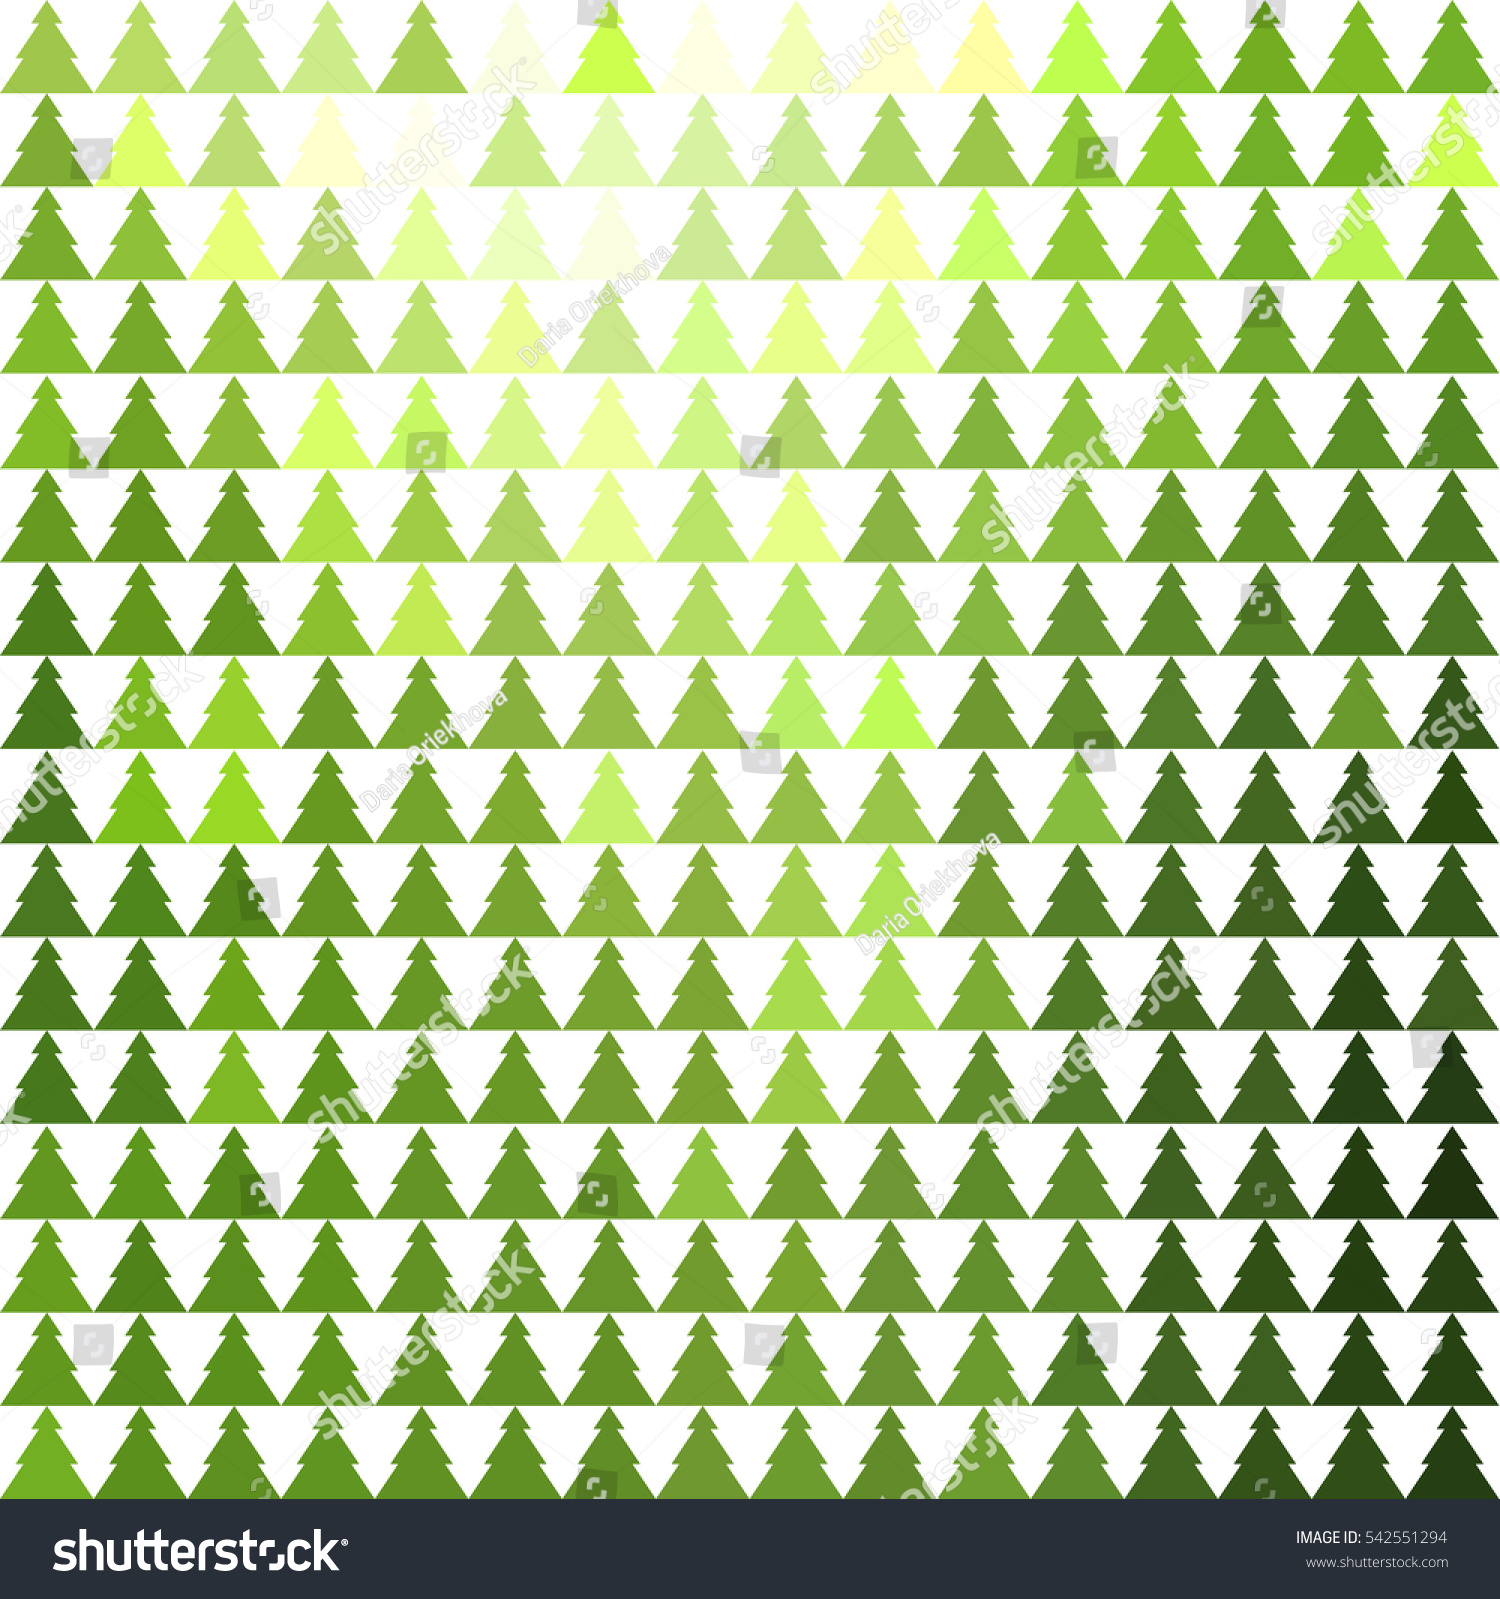 Firtree Abstract Geometric Christmas Trees Colorful Stock Vector ...